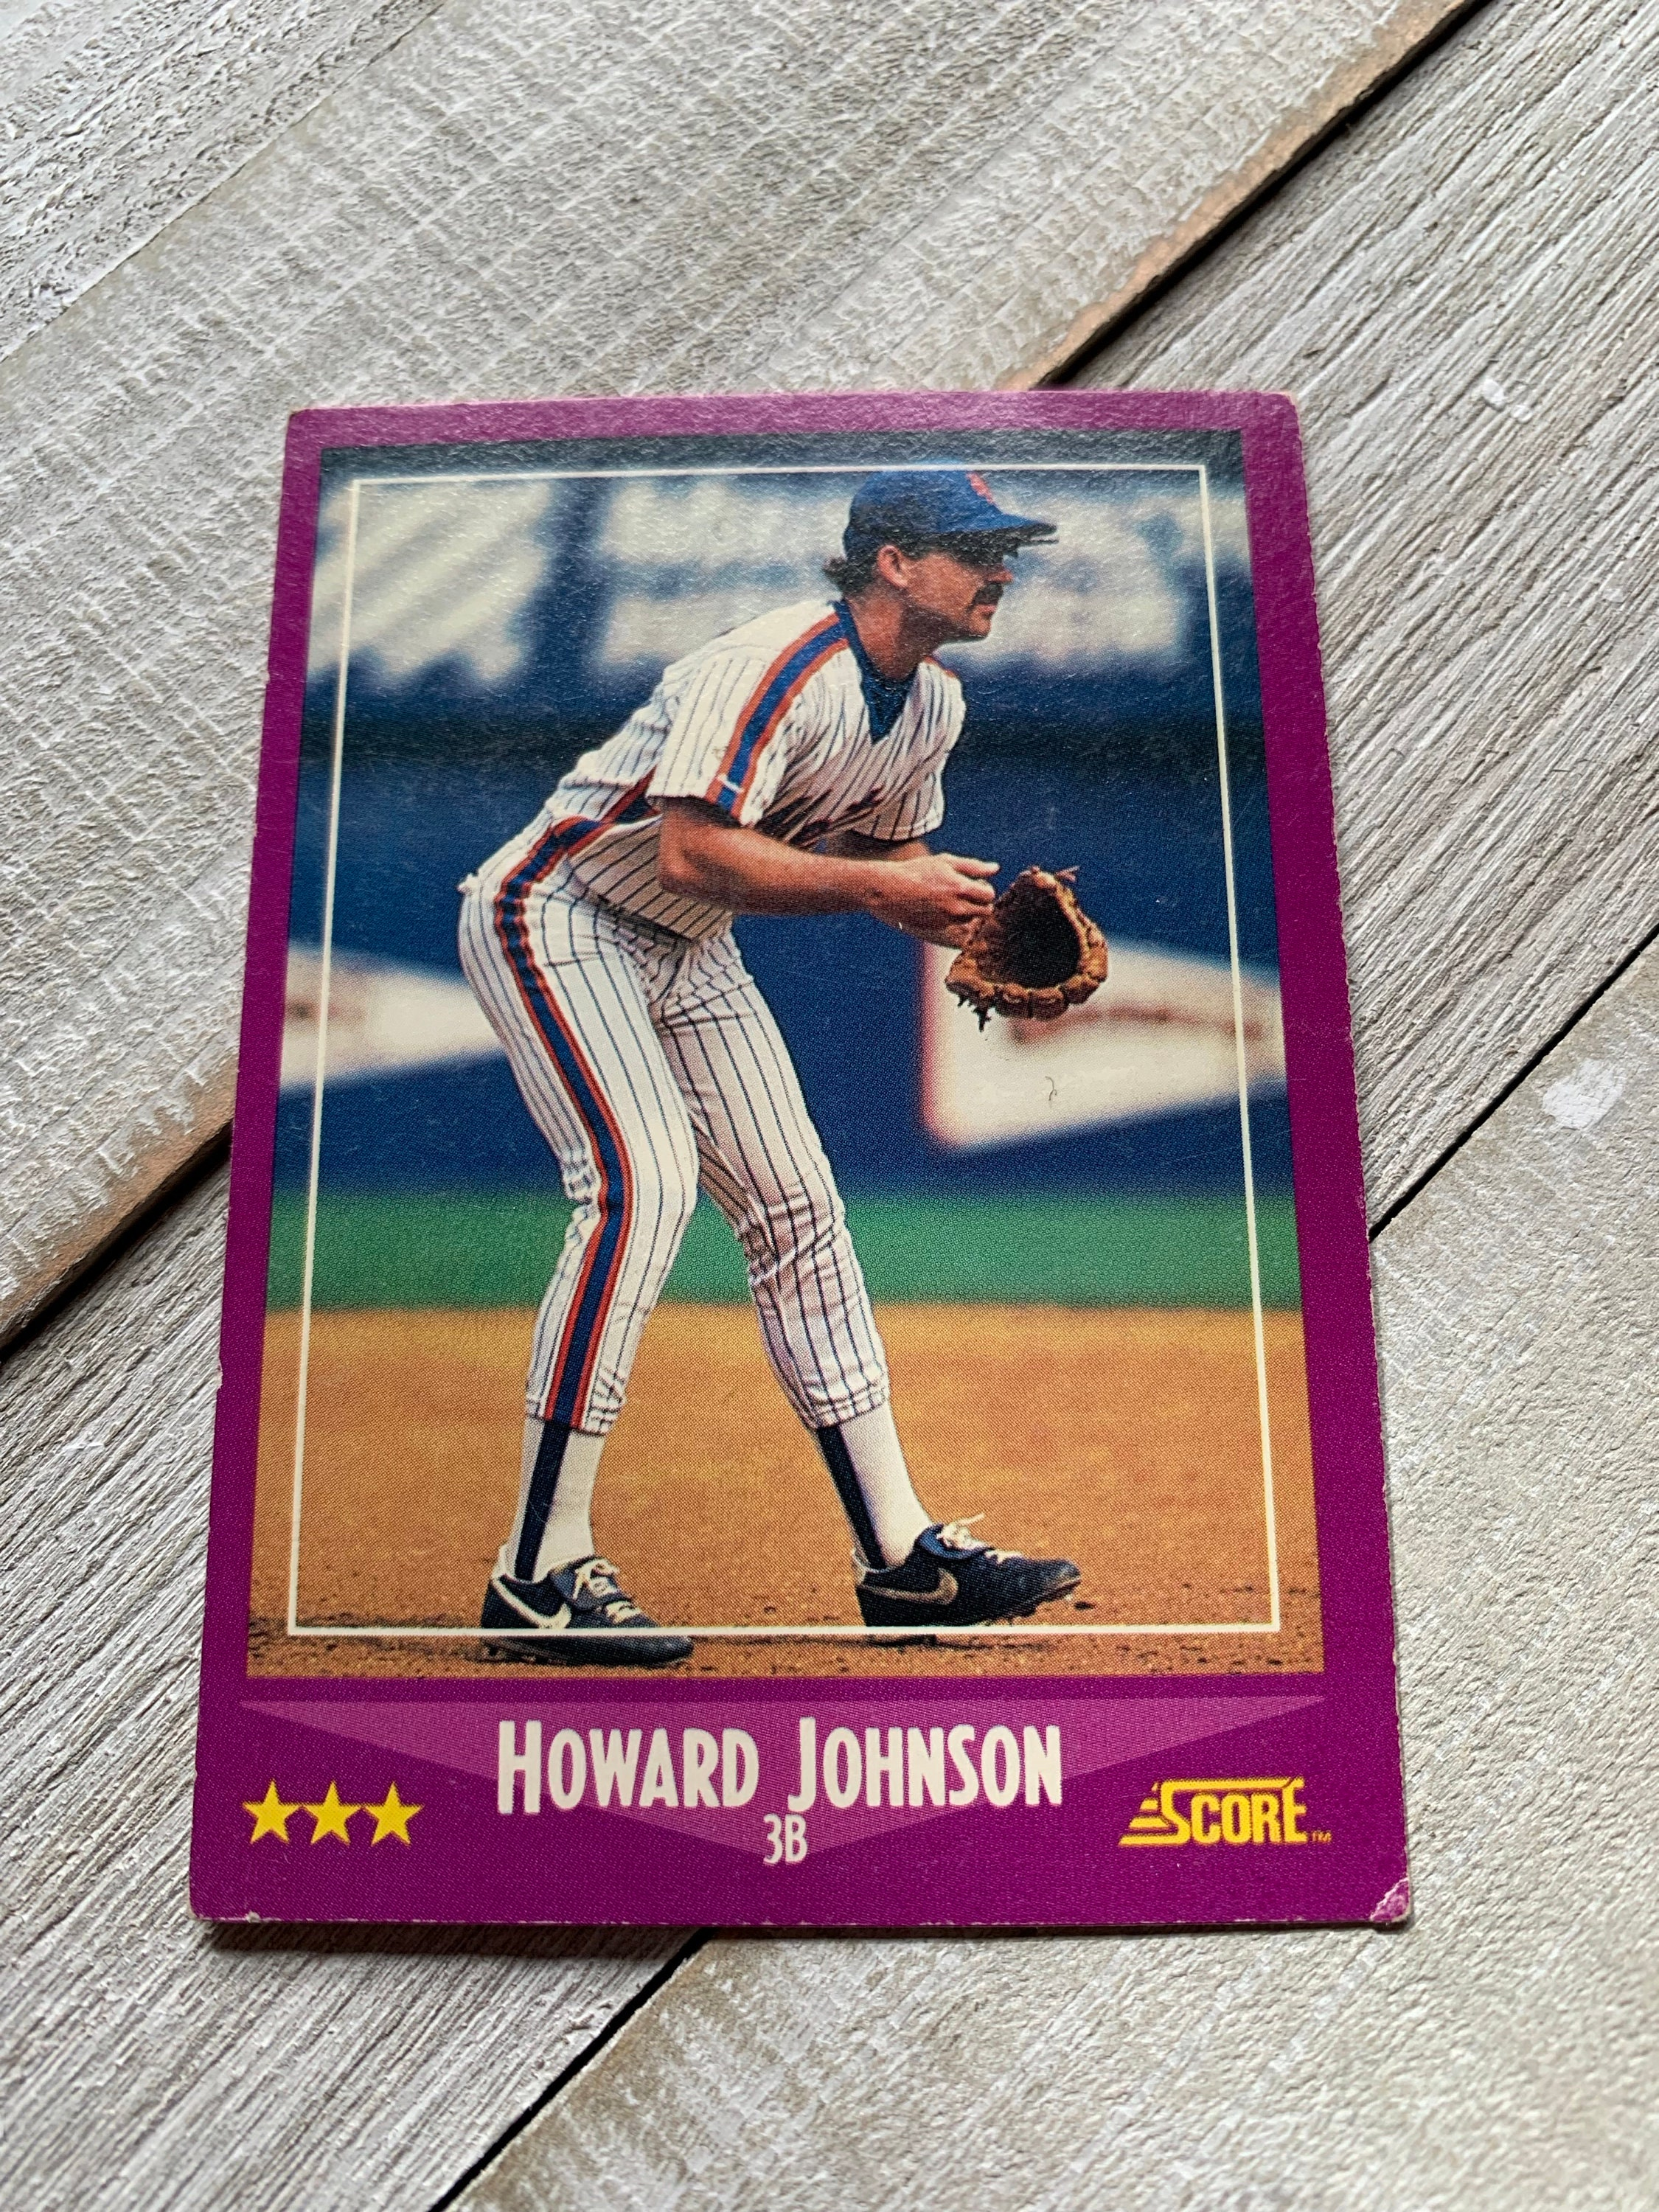 Howard Johnson Baseball Card Mets Score Sports Collectibles